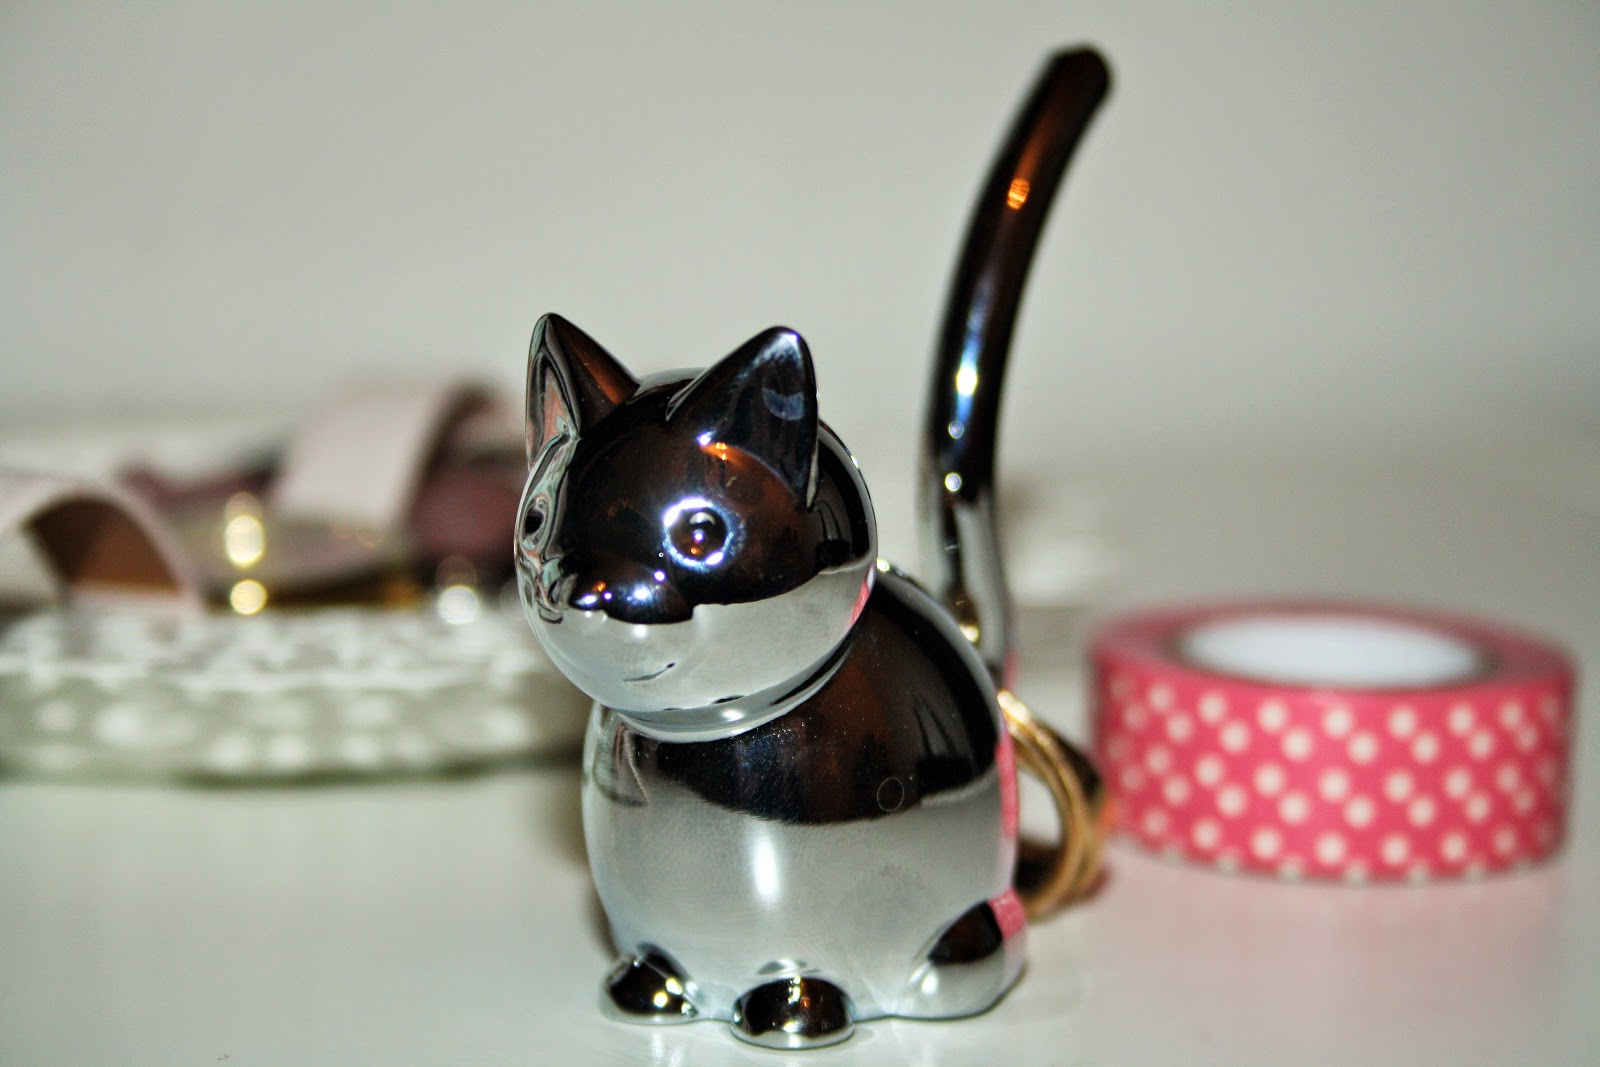 REVIEW: CAT RING HOLDER - PRETTY YOUNG THING